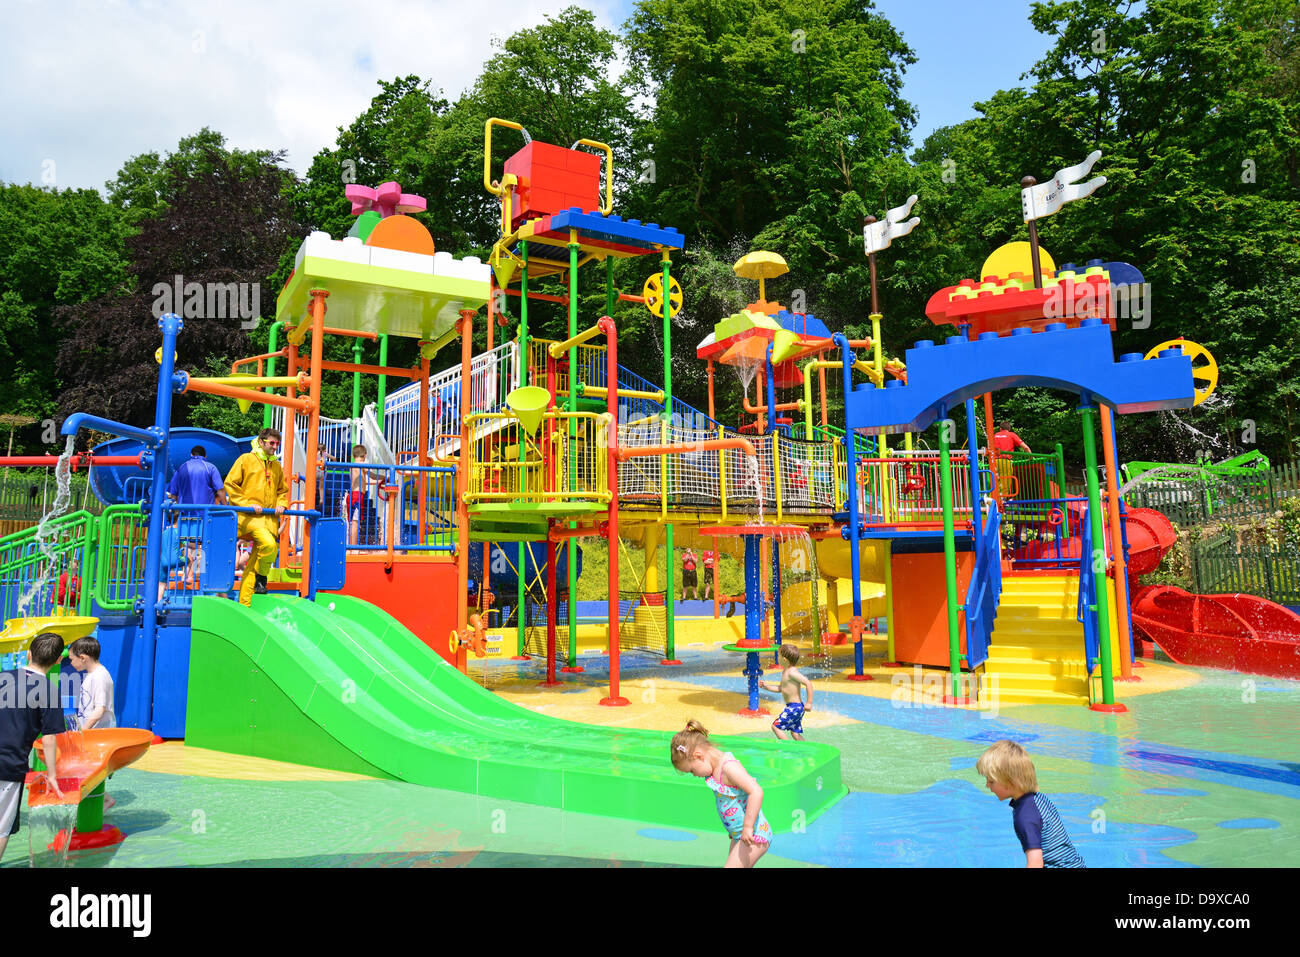 Duplo valley splash play attraction at legoland windsor - Hotels in windsor uk with swimming pool ...